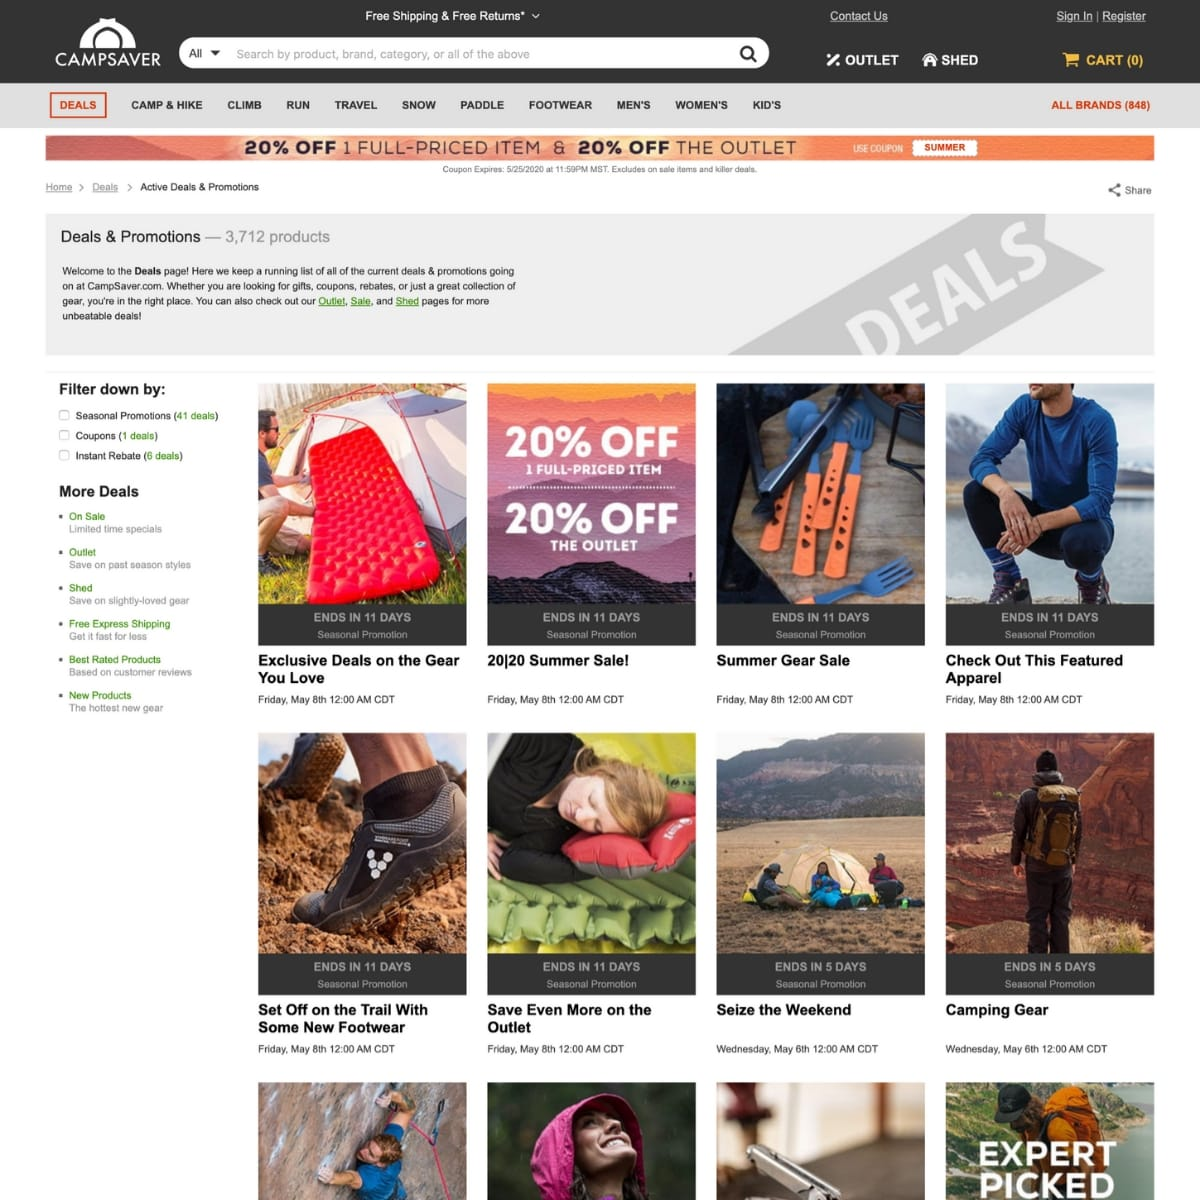 Screen shot of Campsaver website